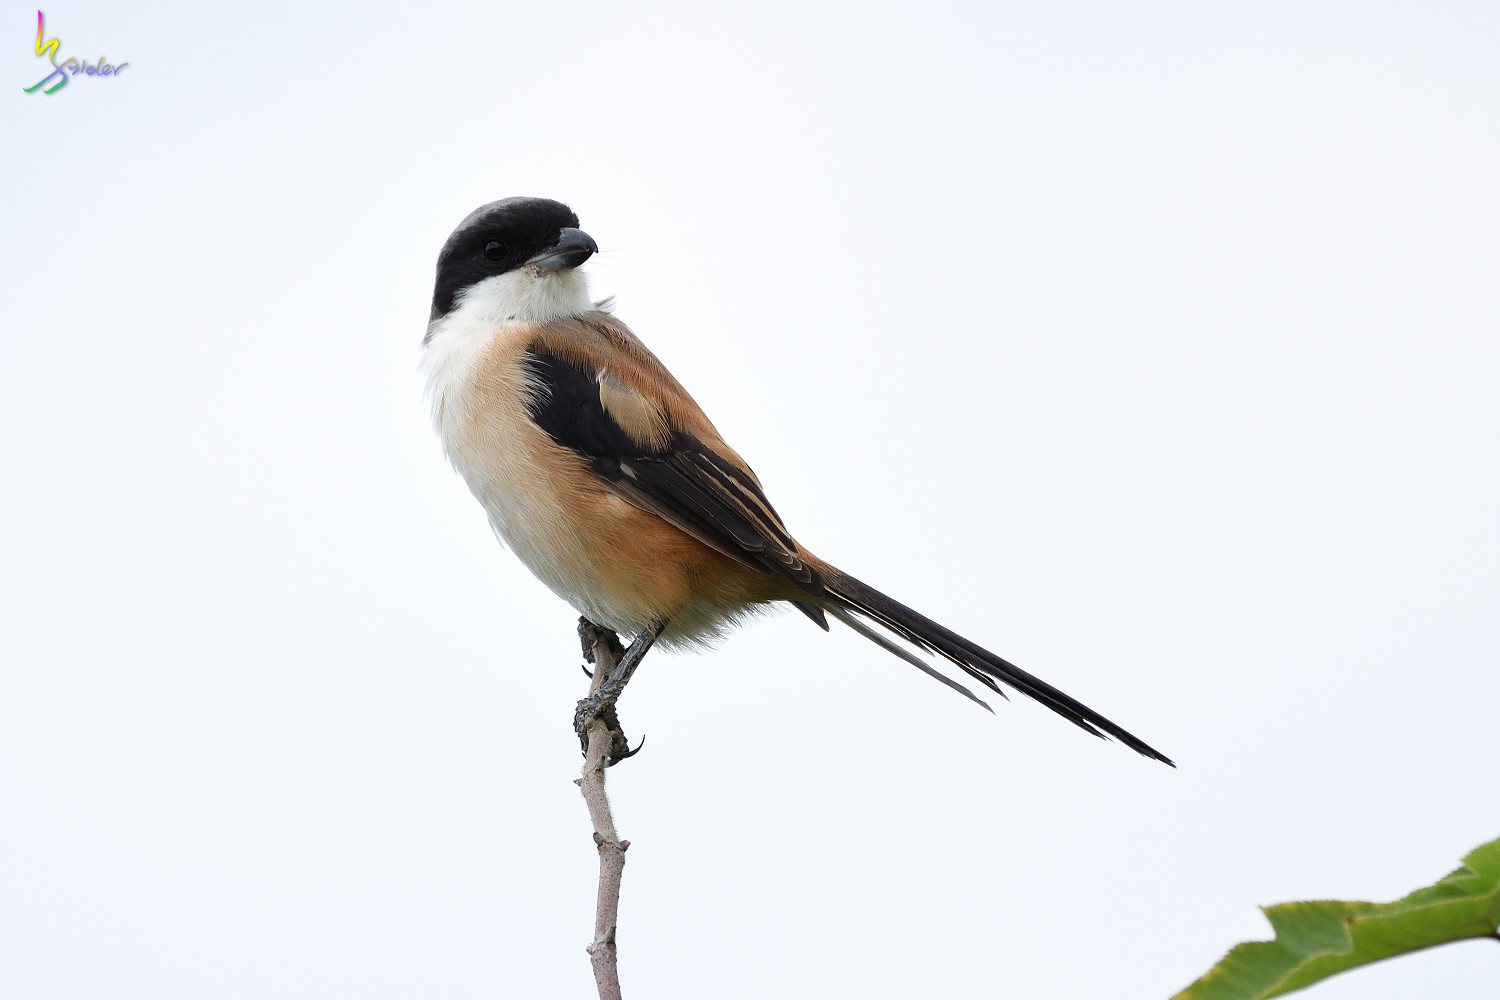 Long-tailed_Shrike_0699